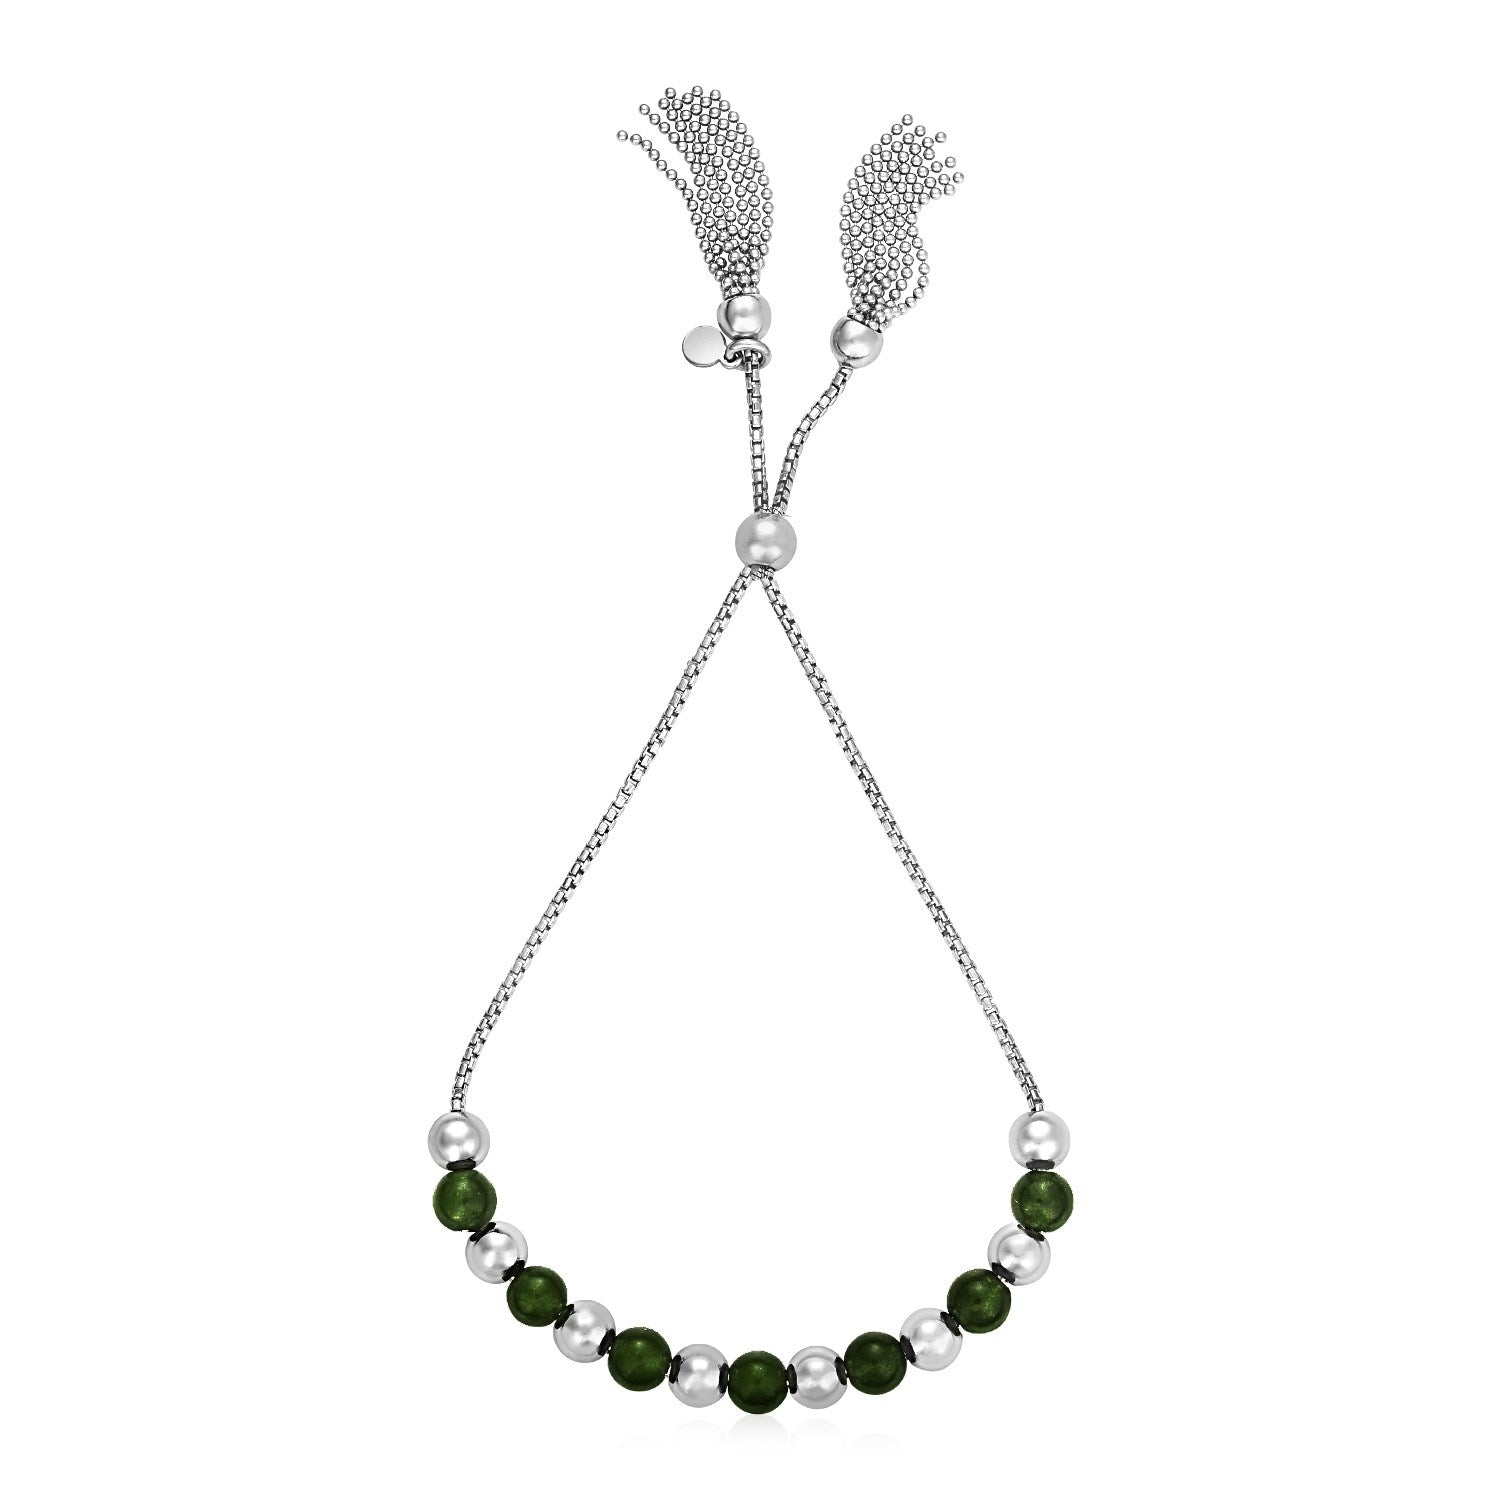 Adjustable Bead Bracelet with Green Jade in Sterling Silver